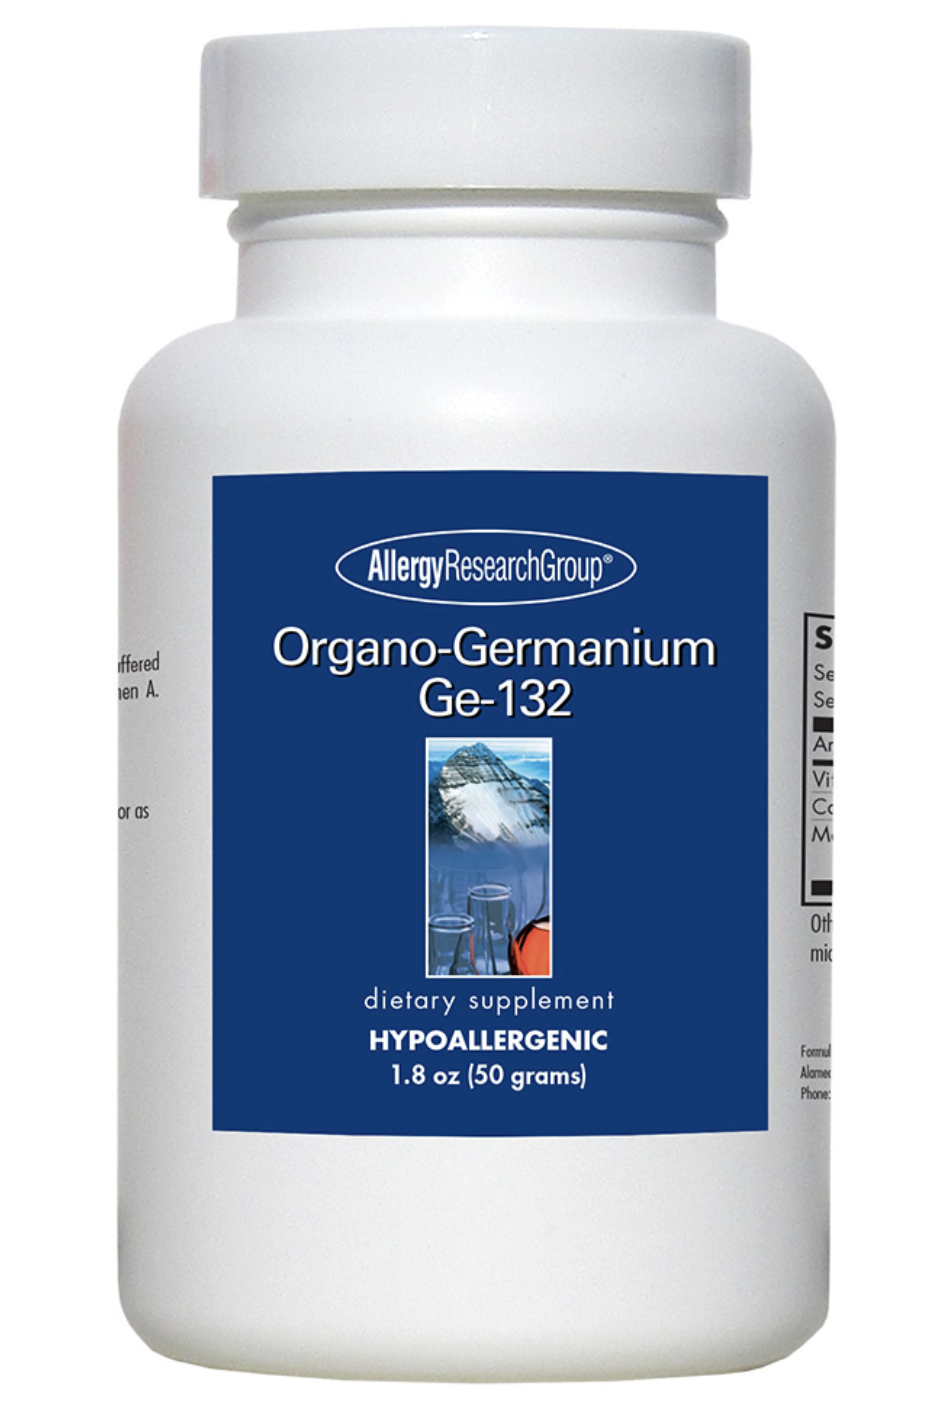 Organo-Germanium Ge-132 Powder 50 grams Allergy Research Group